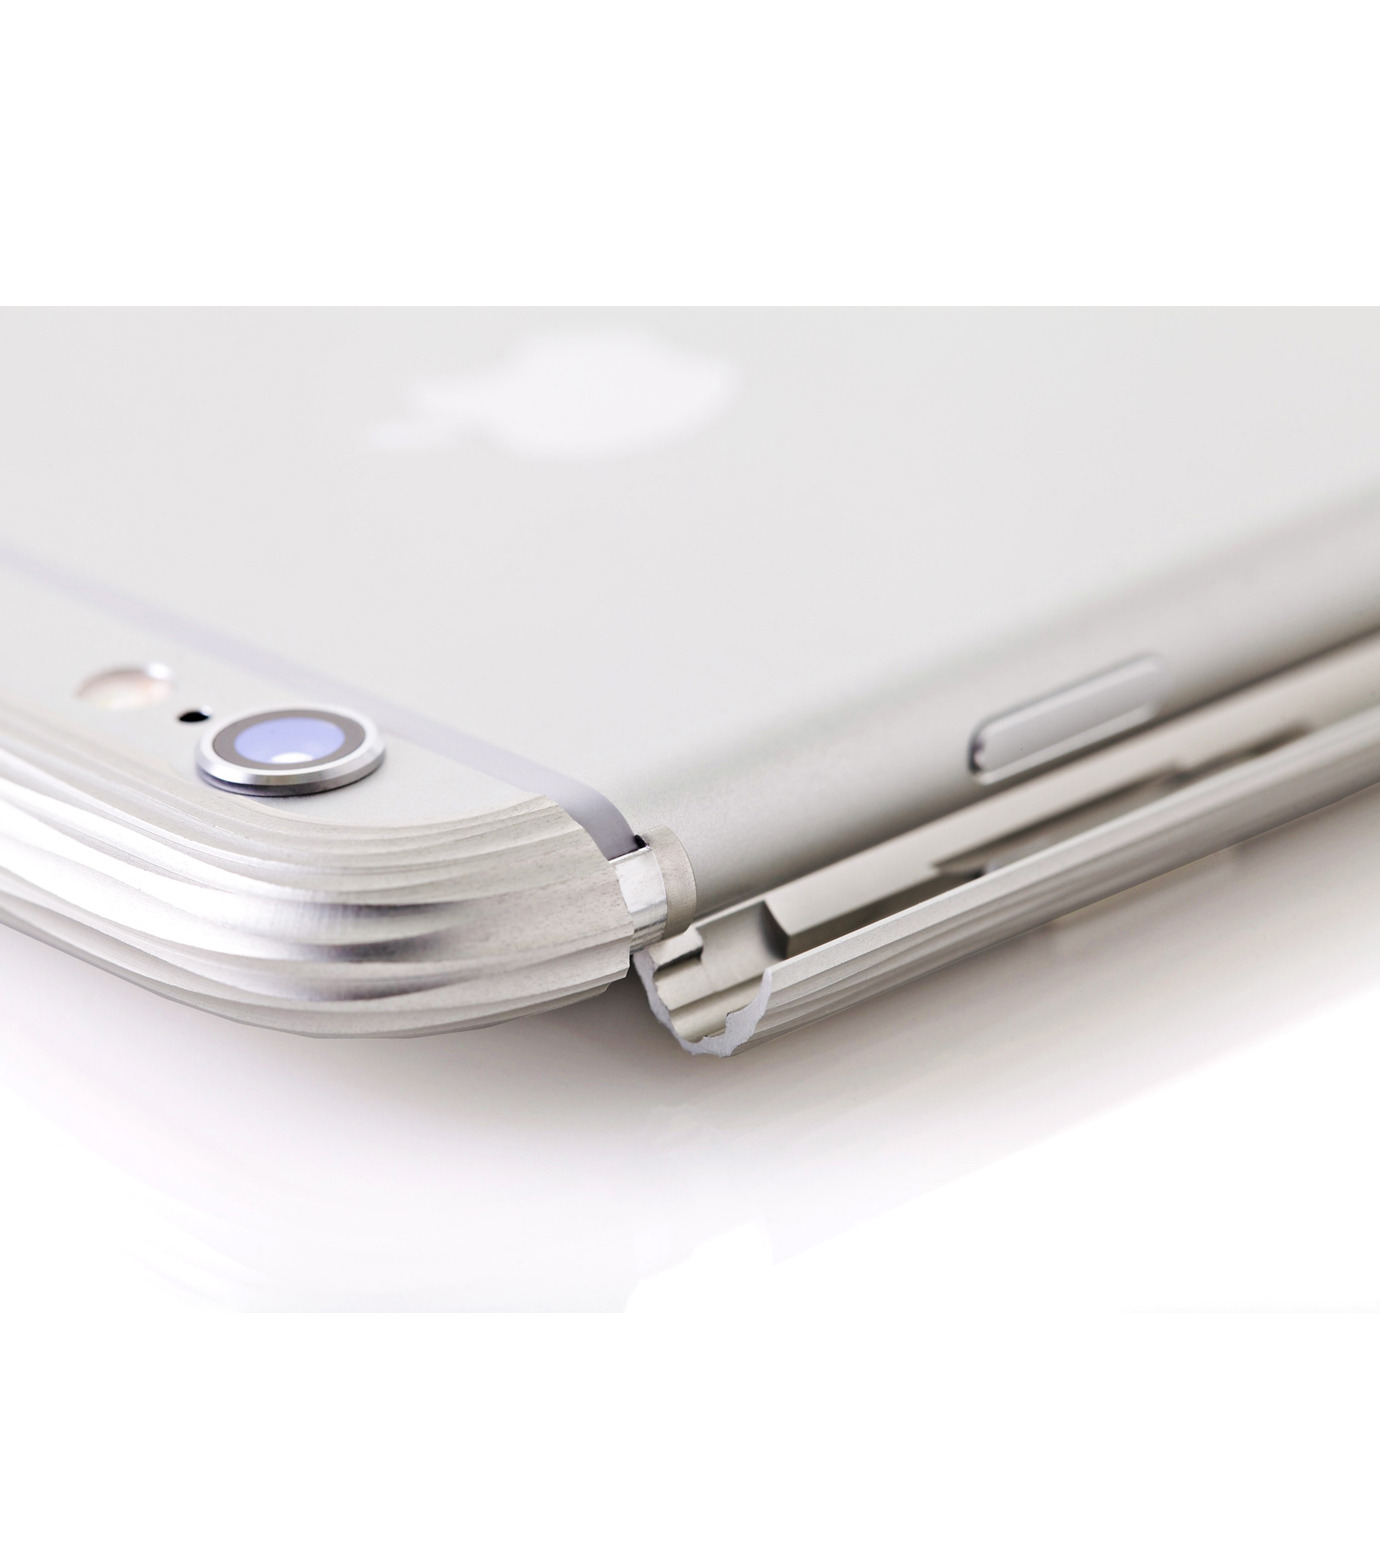 SQUAIR(スクエア)のThe Dimple for iPhone6s plus-SILVER(ケースiphone6plus/6splus/case iphone6plus/6splus)-SQDMP630-SLV-1 拡大詳細画像4